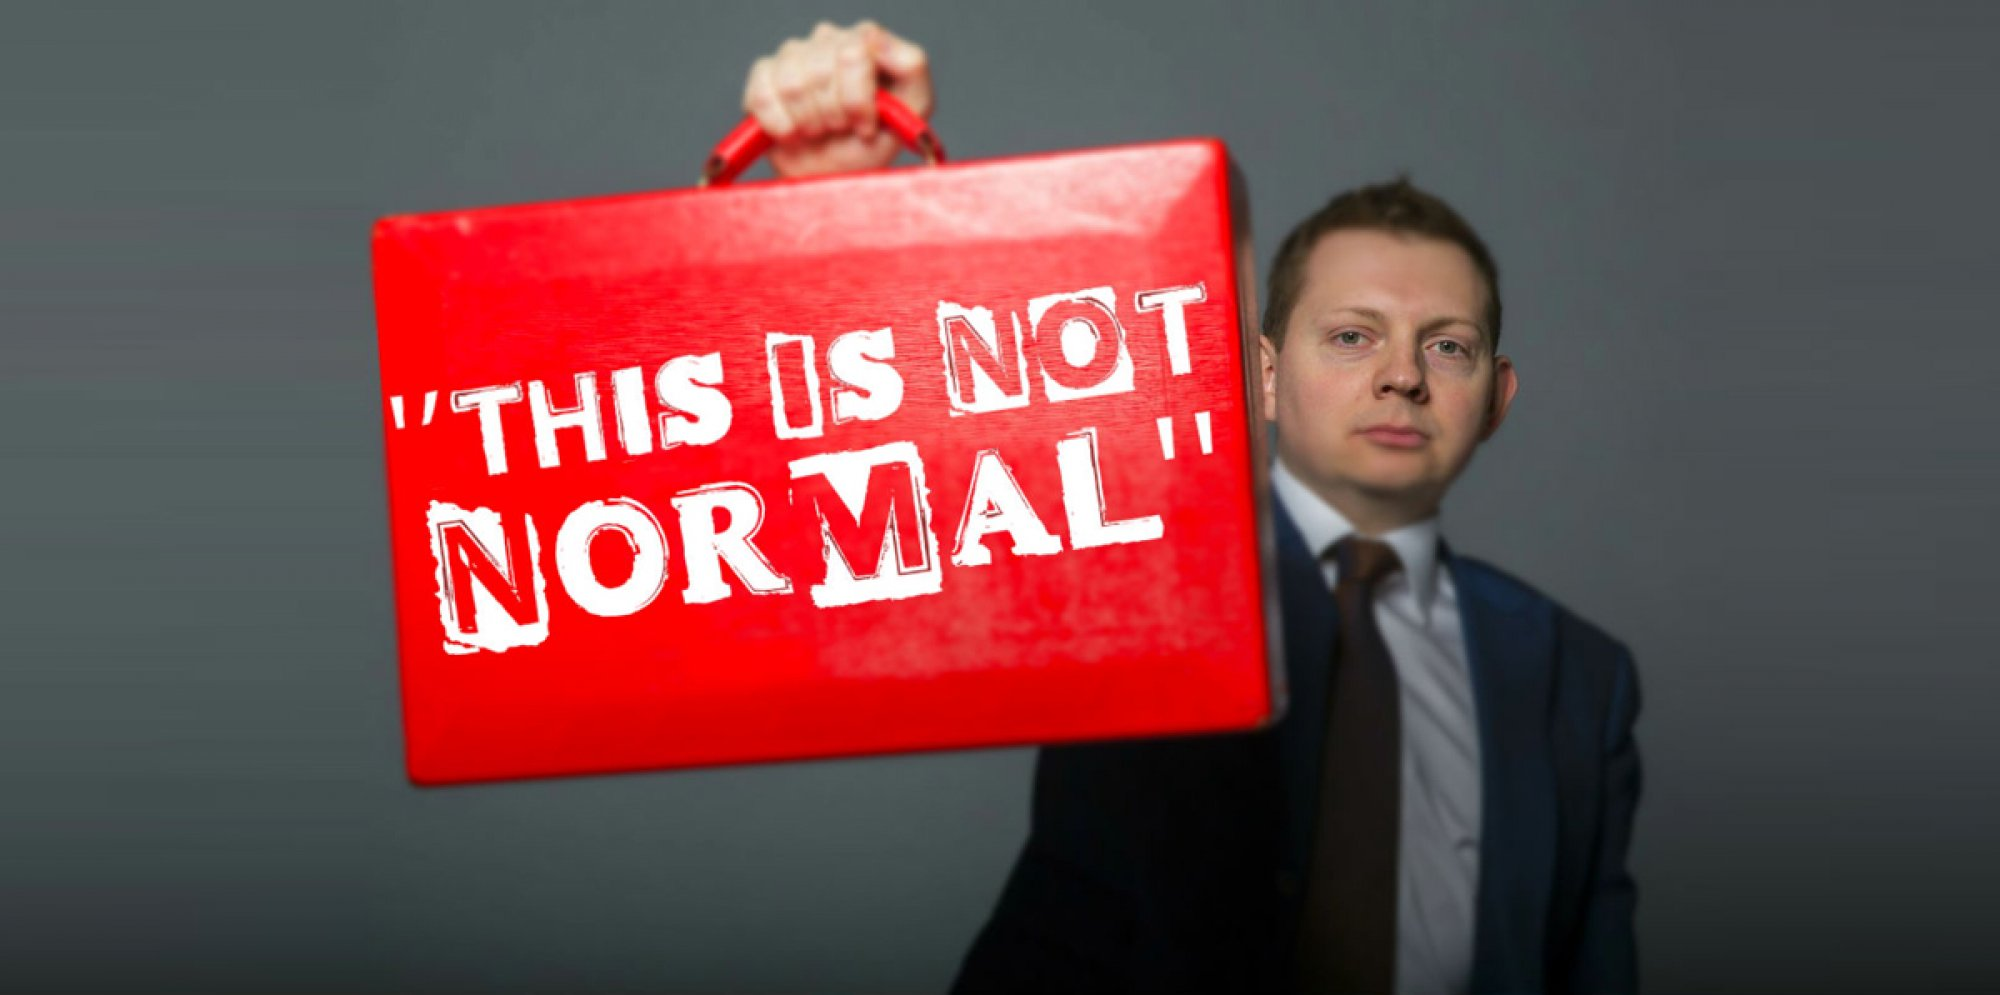 Matt Chorley: A man in a suit holds up a red briefcase that's labelled